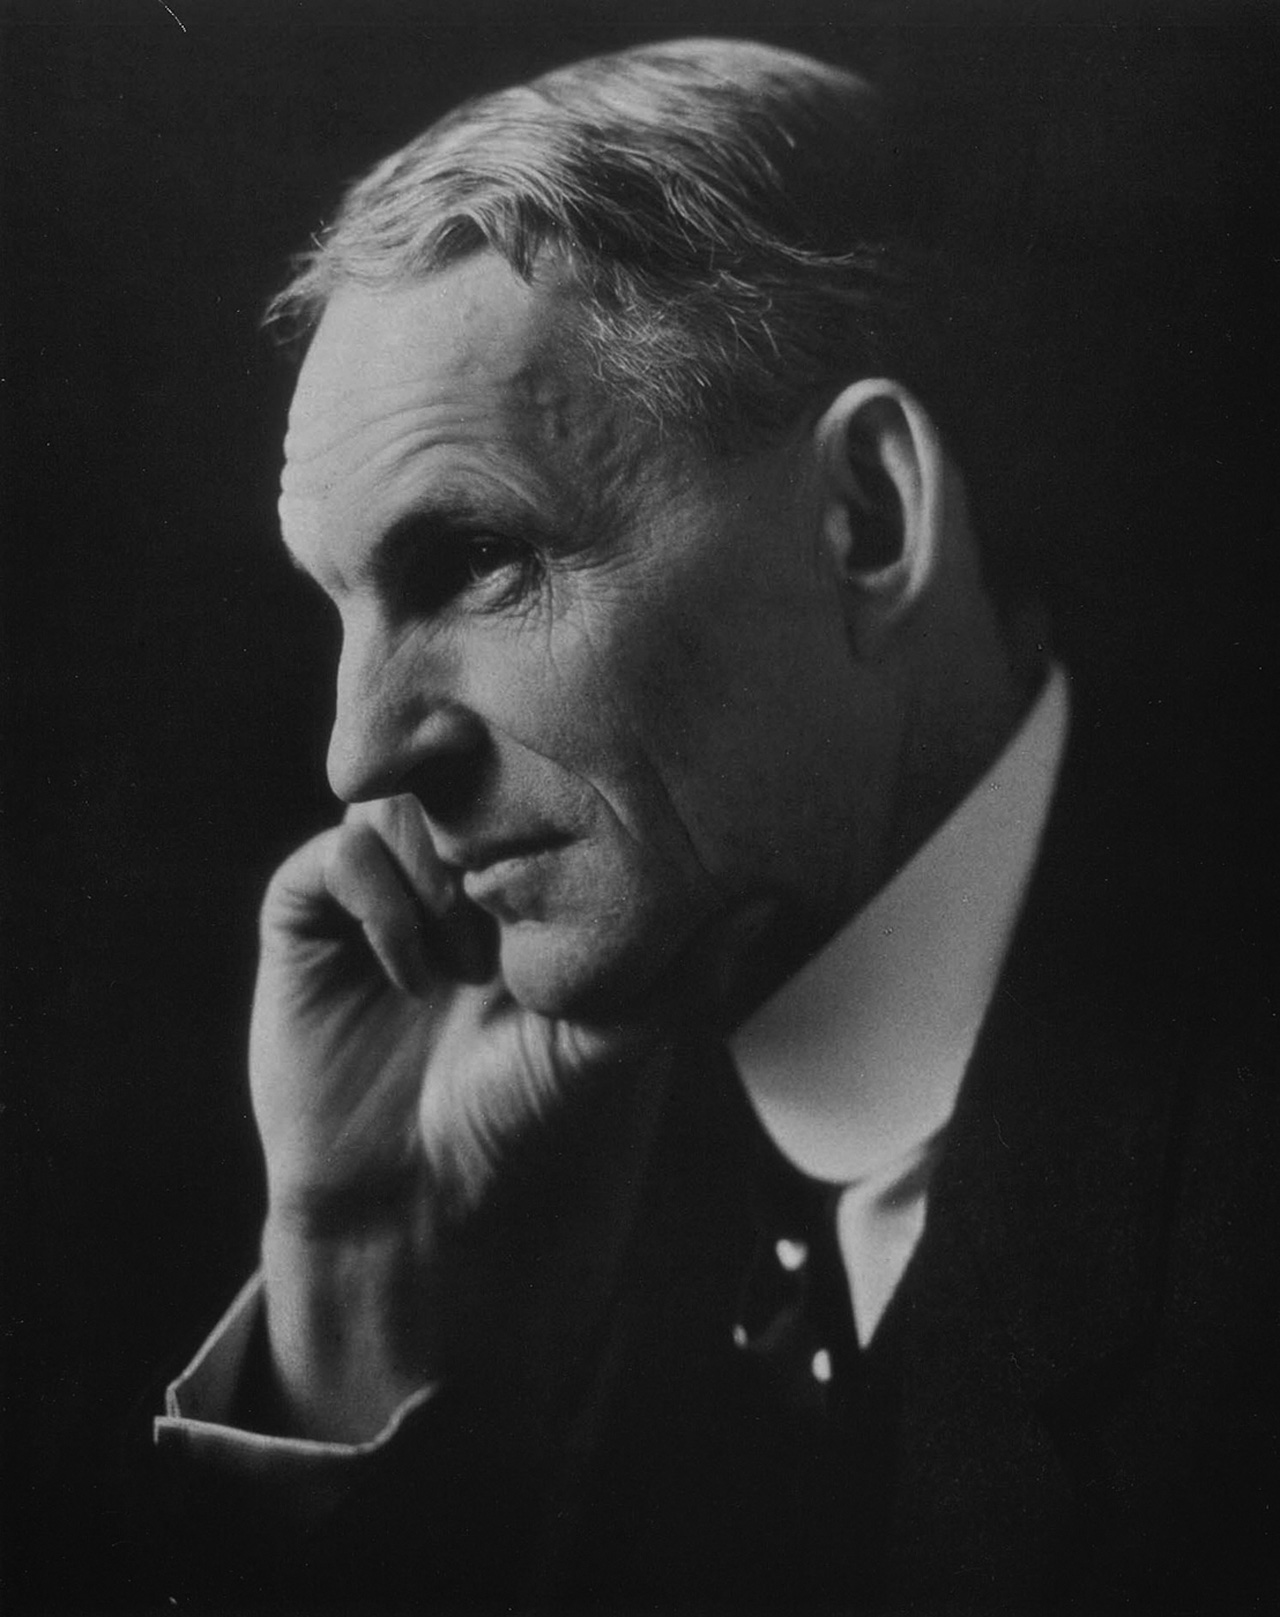 I need questions on Henry Ford for term paper?